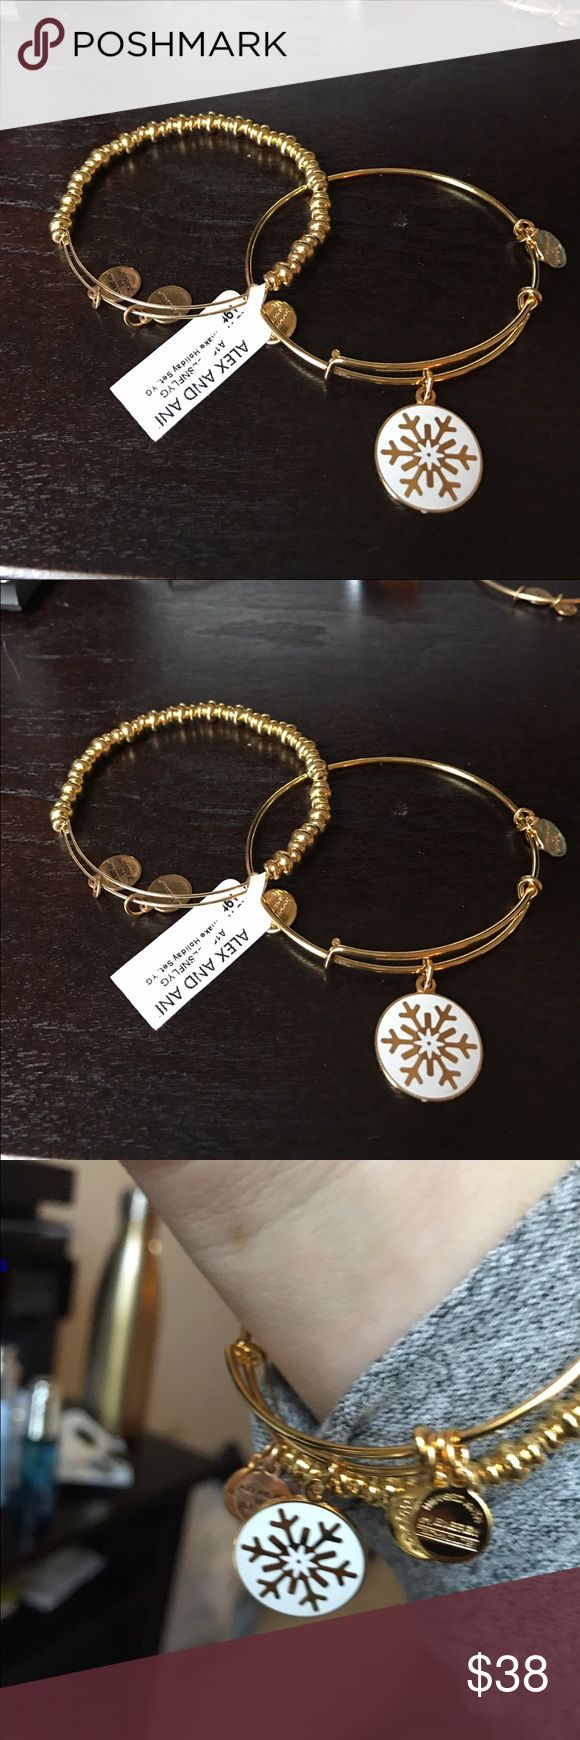 ❣️Rare❣️Alex and Ani shiny gold bracelets Set of two shiny gold Alex and Ani bracelets. One is a shiny gold beaded bracelet and the other is a shiny gold and white snowflake ❄️ truly a beautiful set. New with retail tags Alex & Ani Jewelry Bracelets